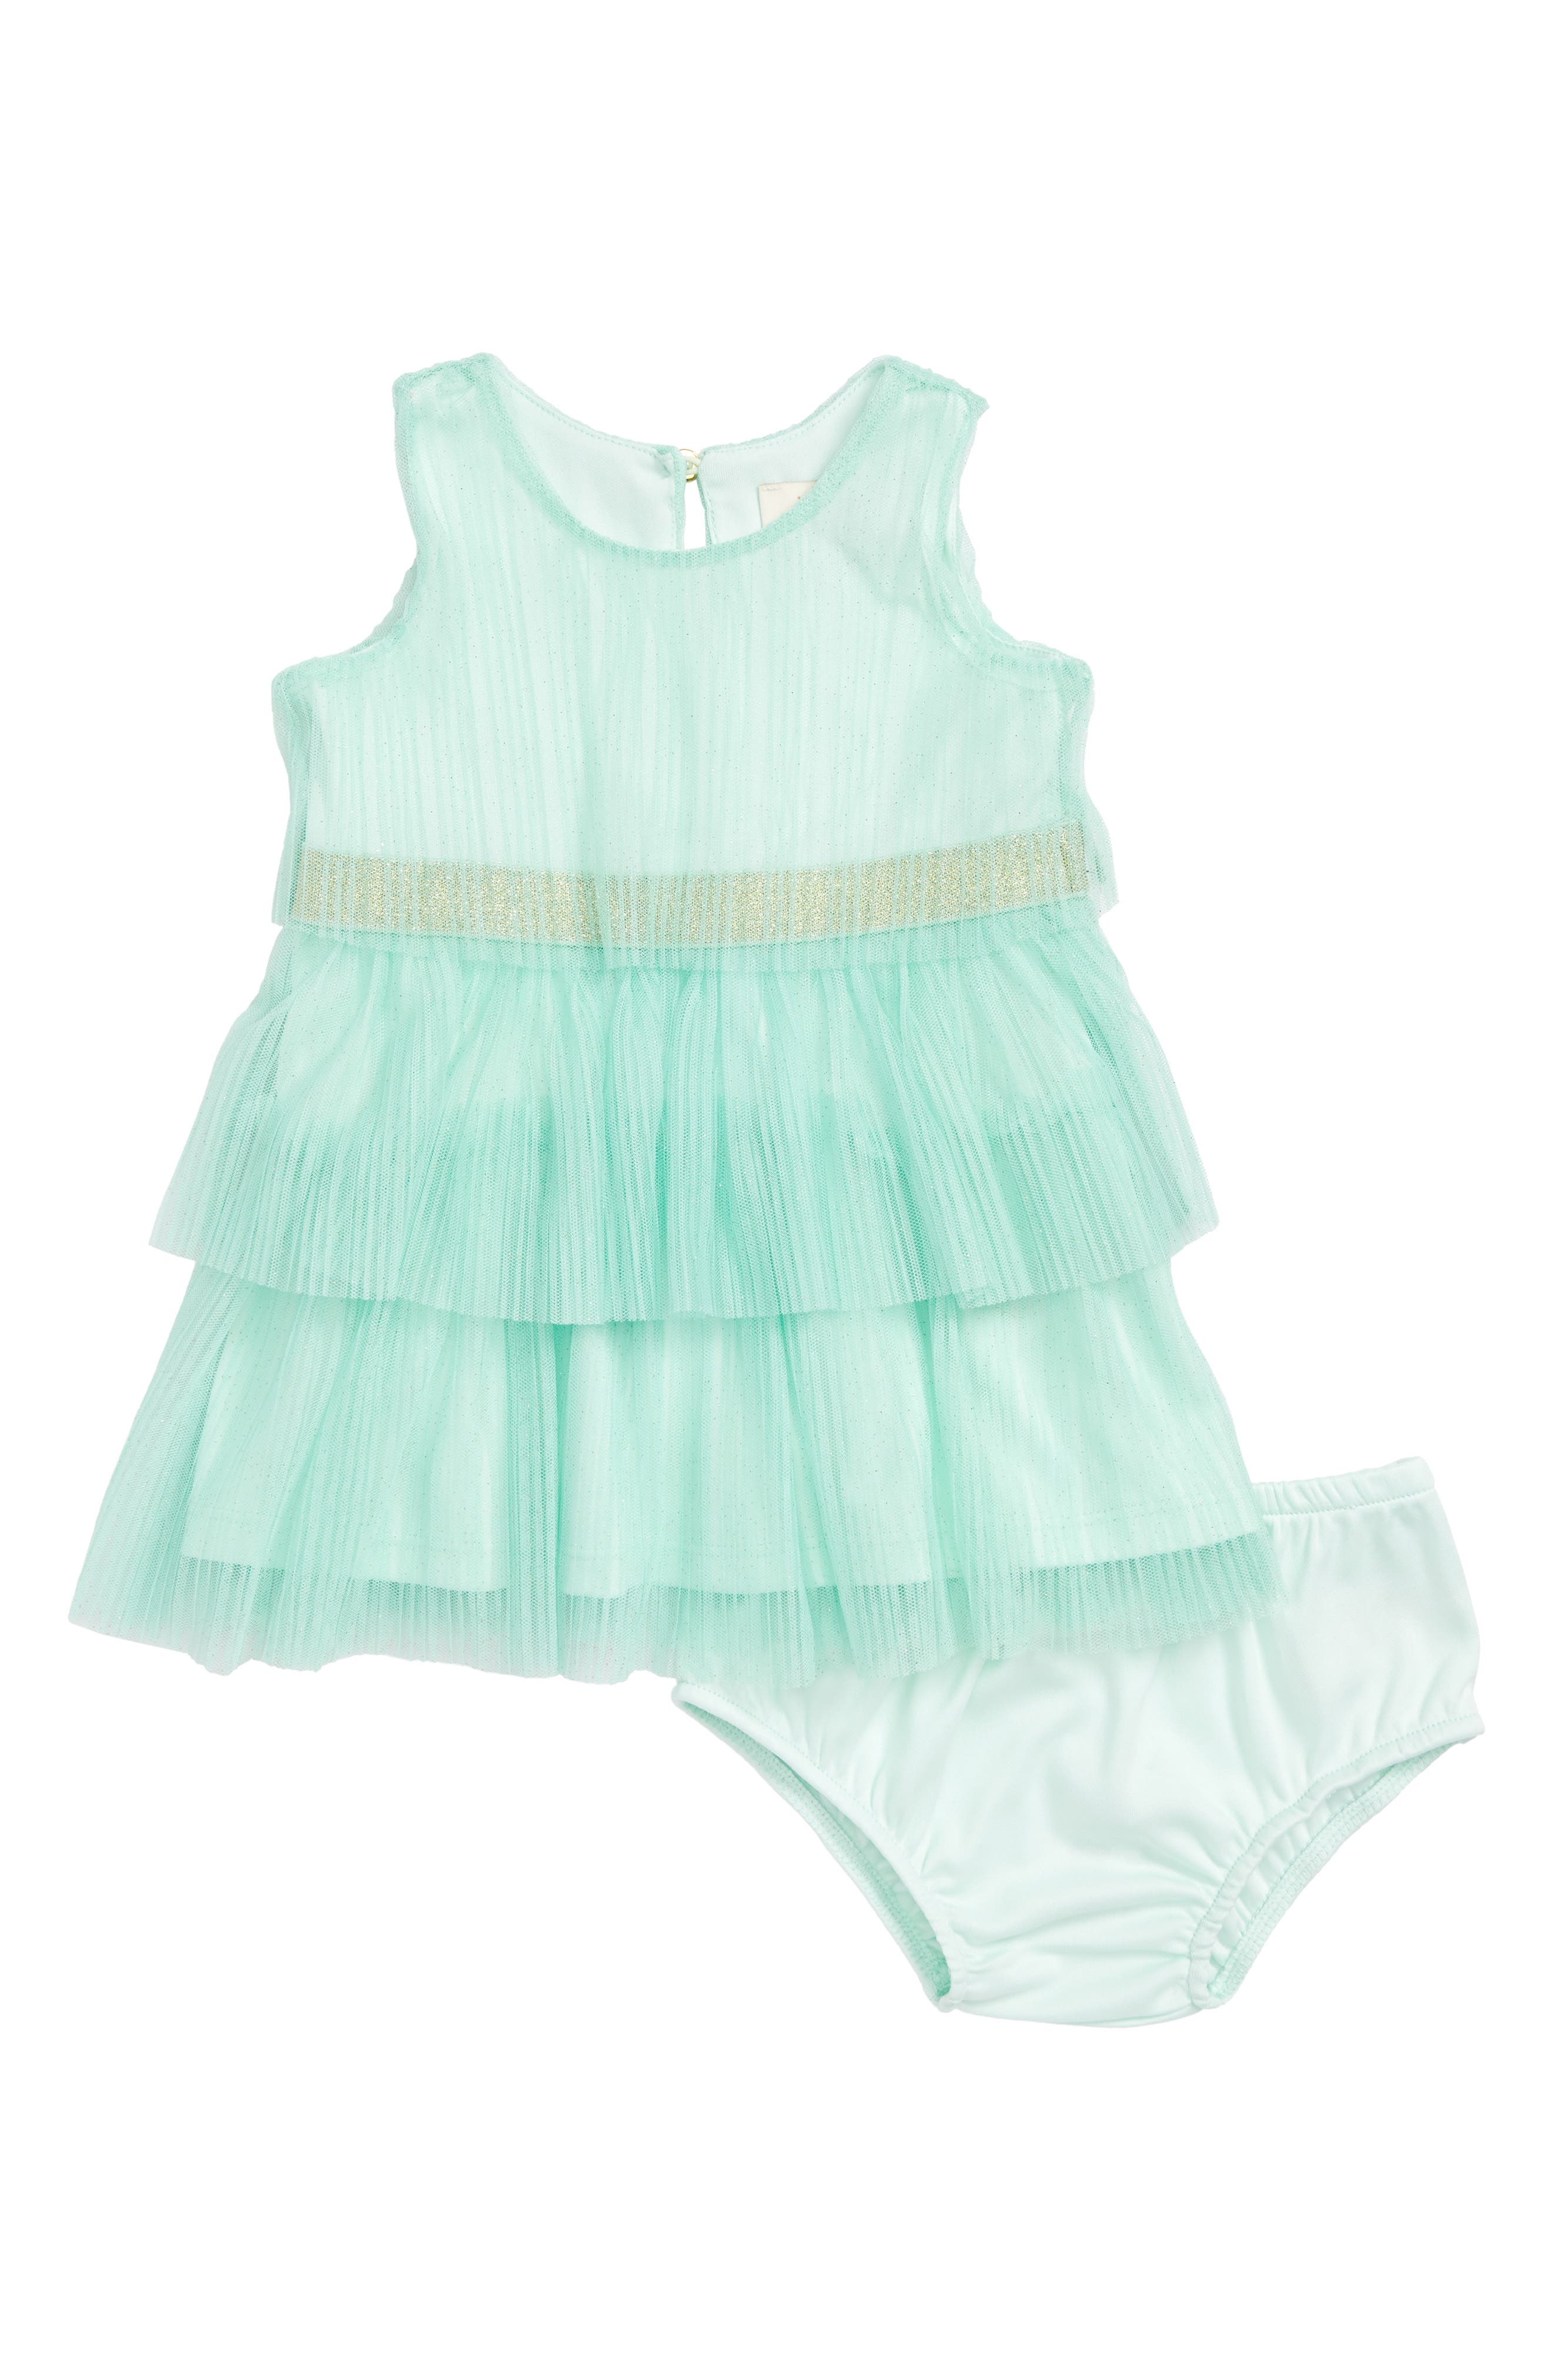 pleated tulle dress,                             Main thumbnail 1, color,                             330